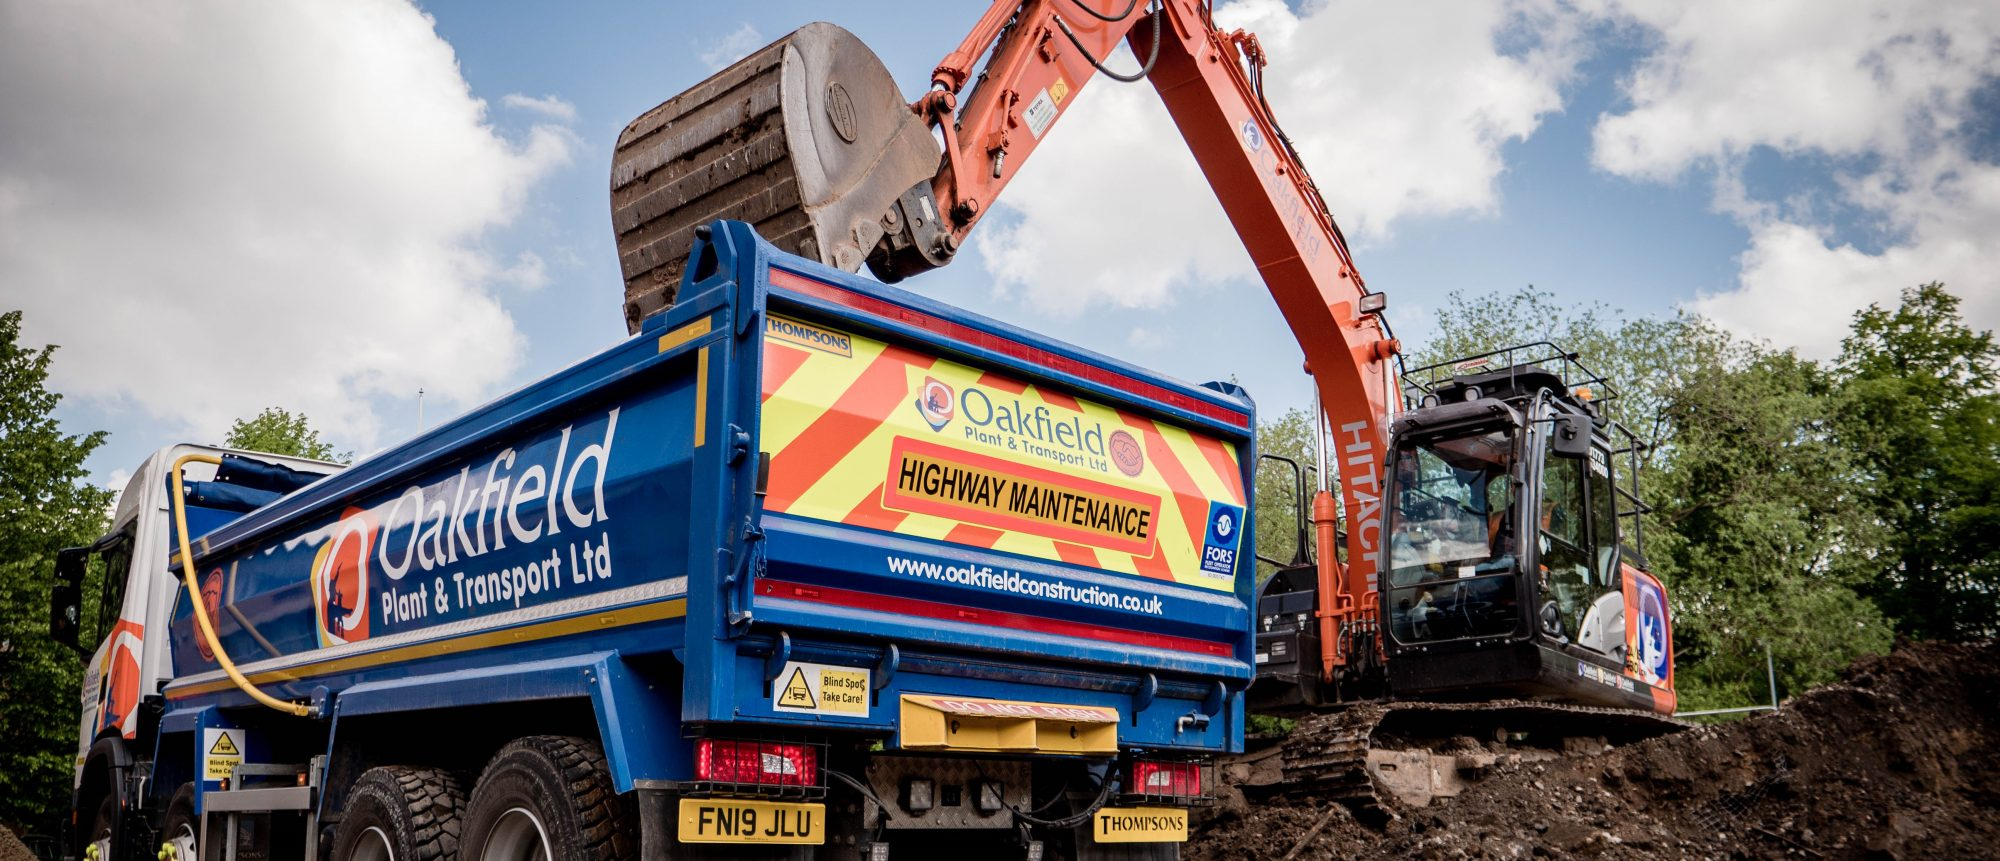 Oakfield Construction C.Eng. Ltd